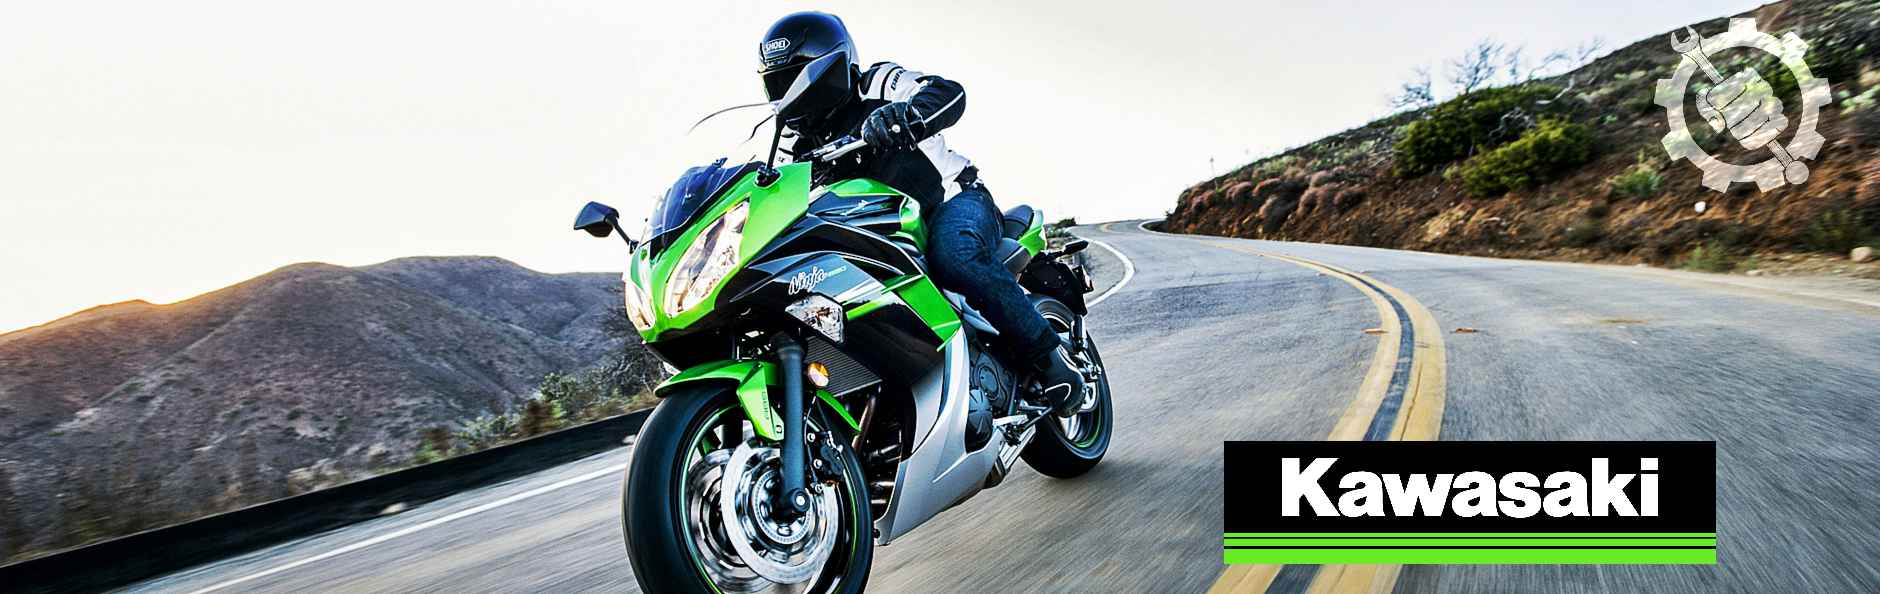 Genuine Kawasaki Motorcycle Parts